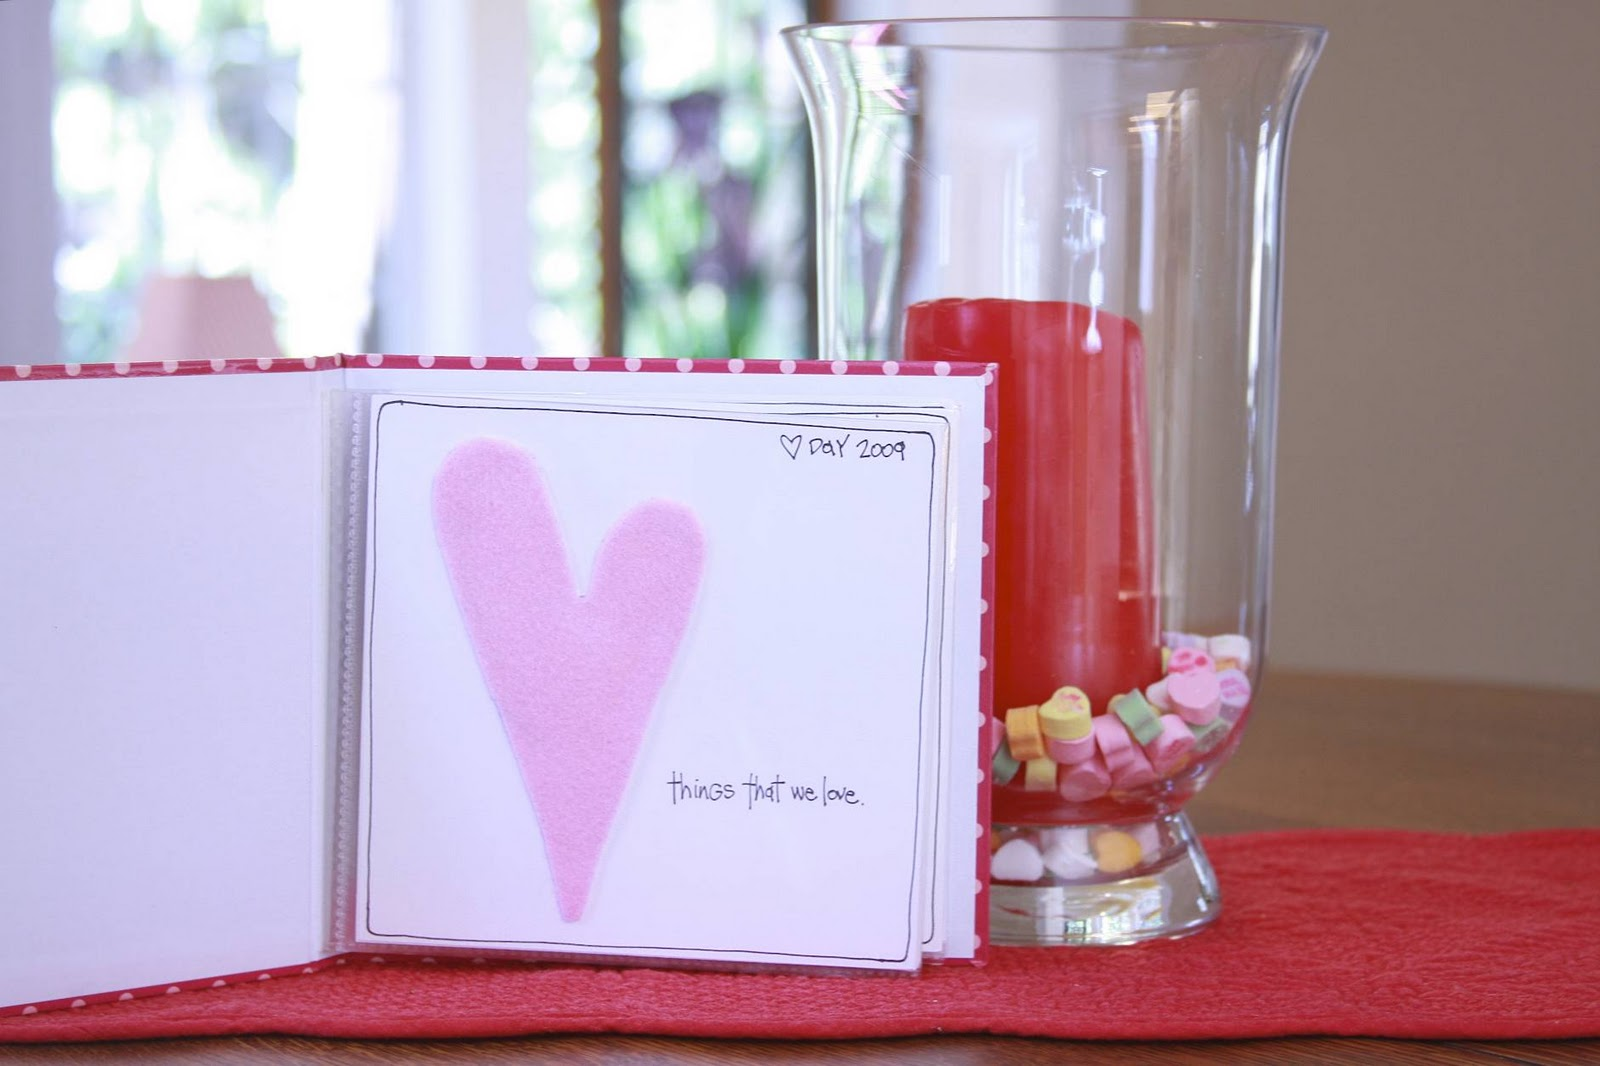 Things That We Love Mini Album | Monika Wright